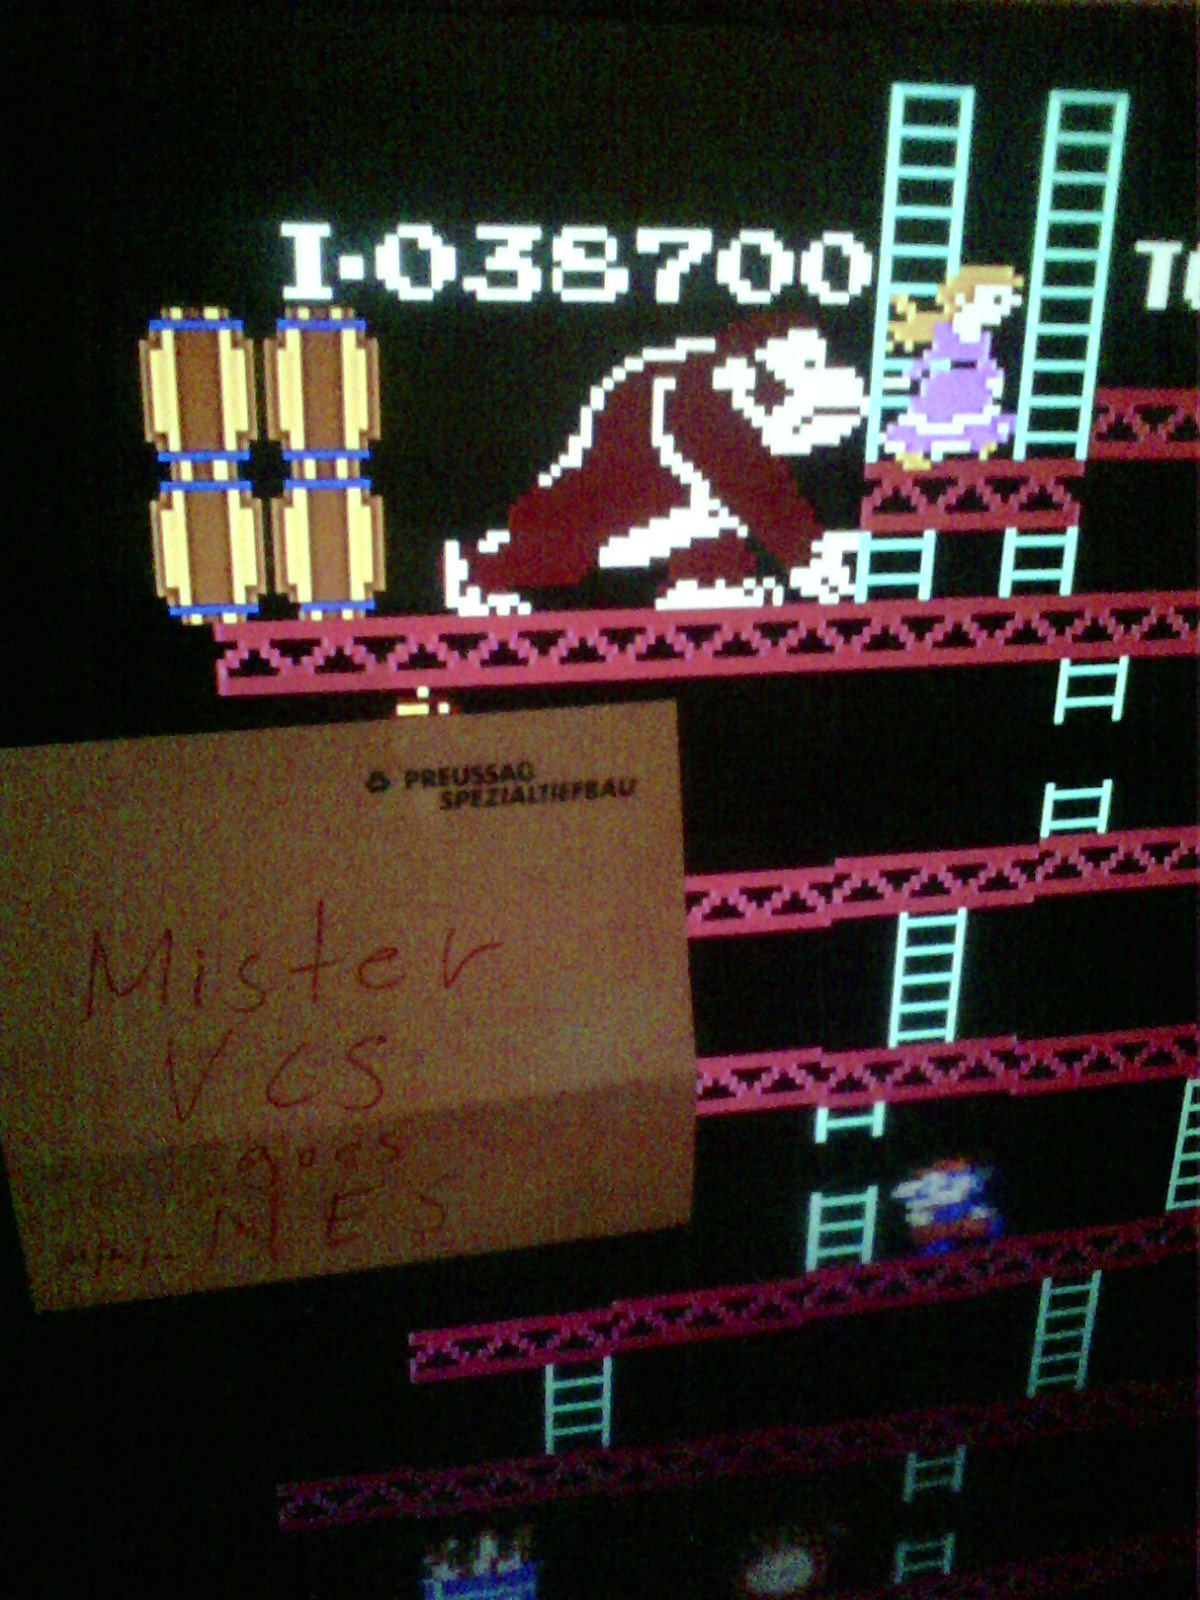 Donkey Kong 38,700 points